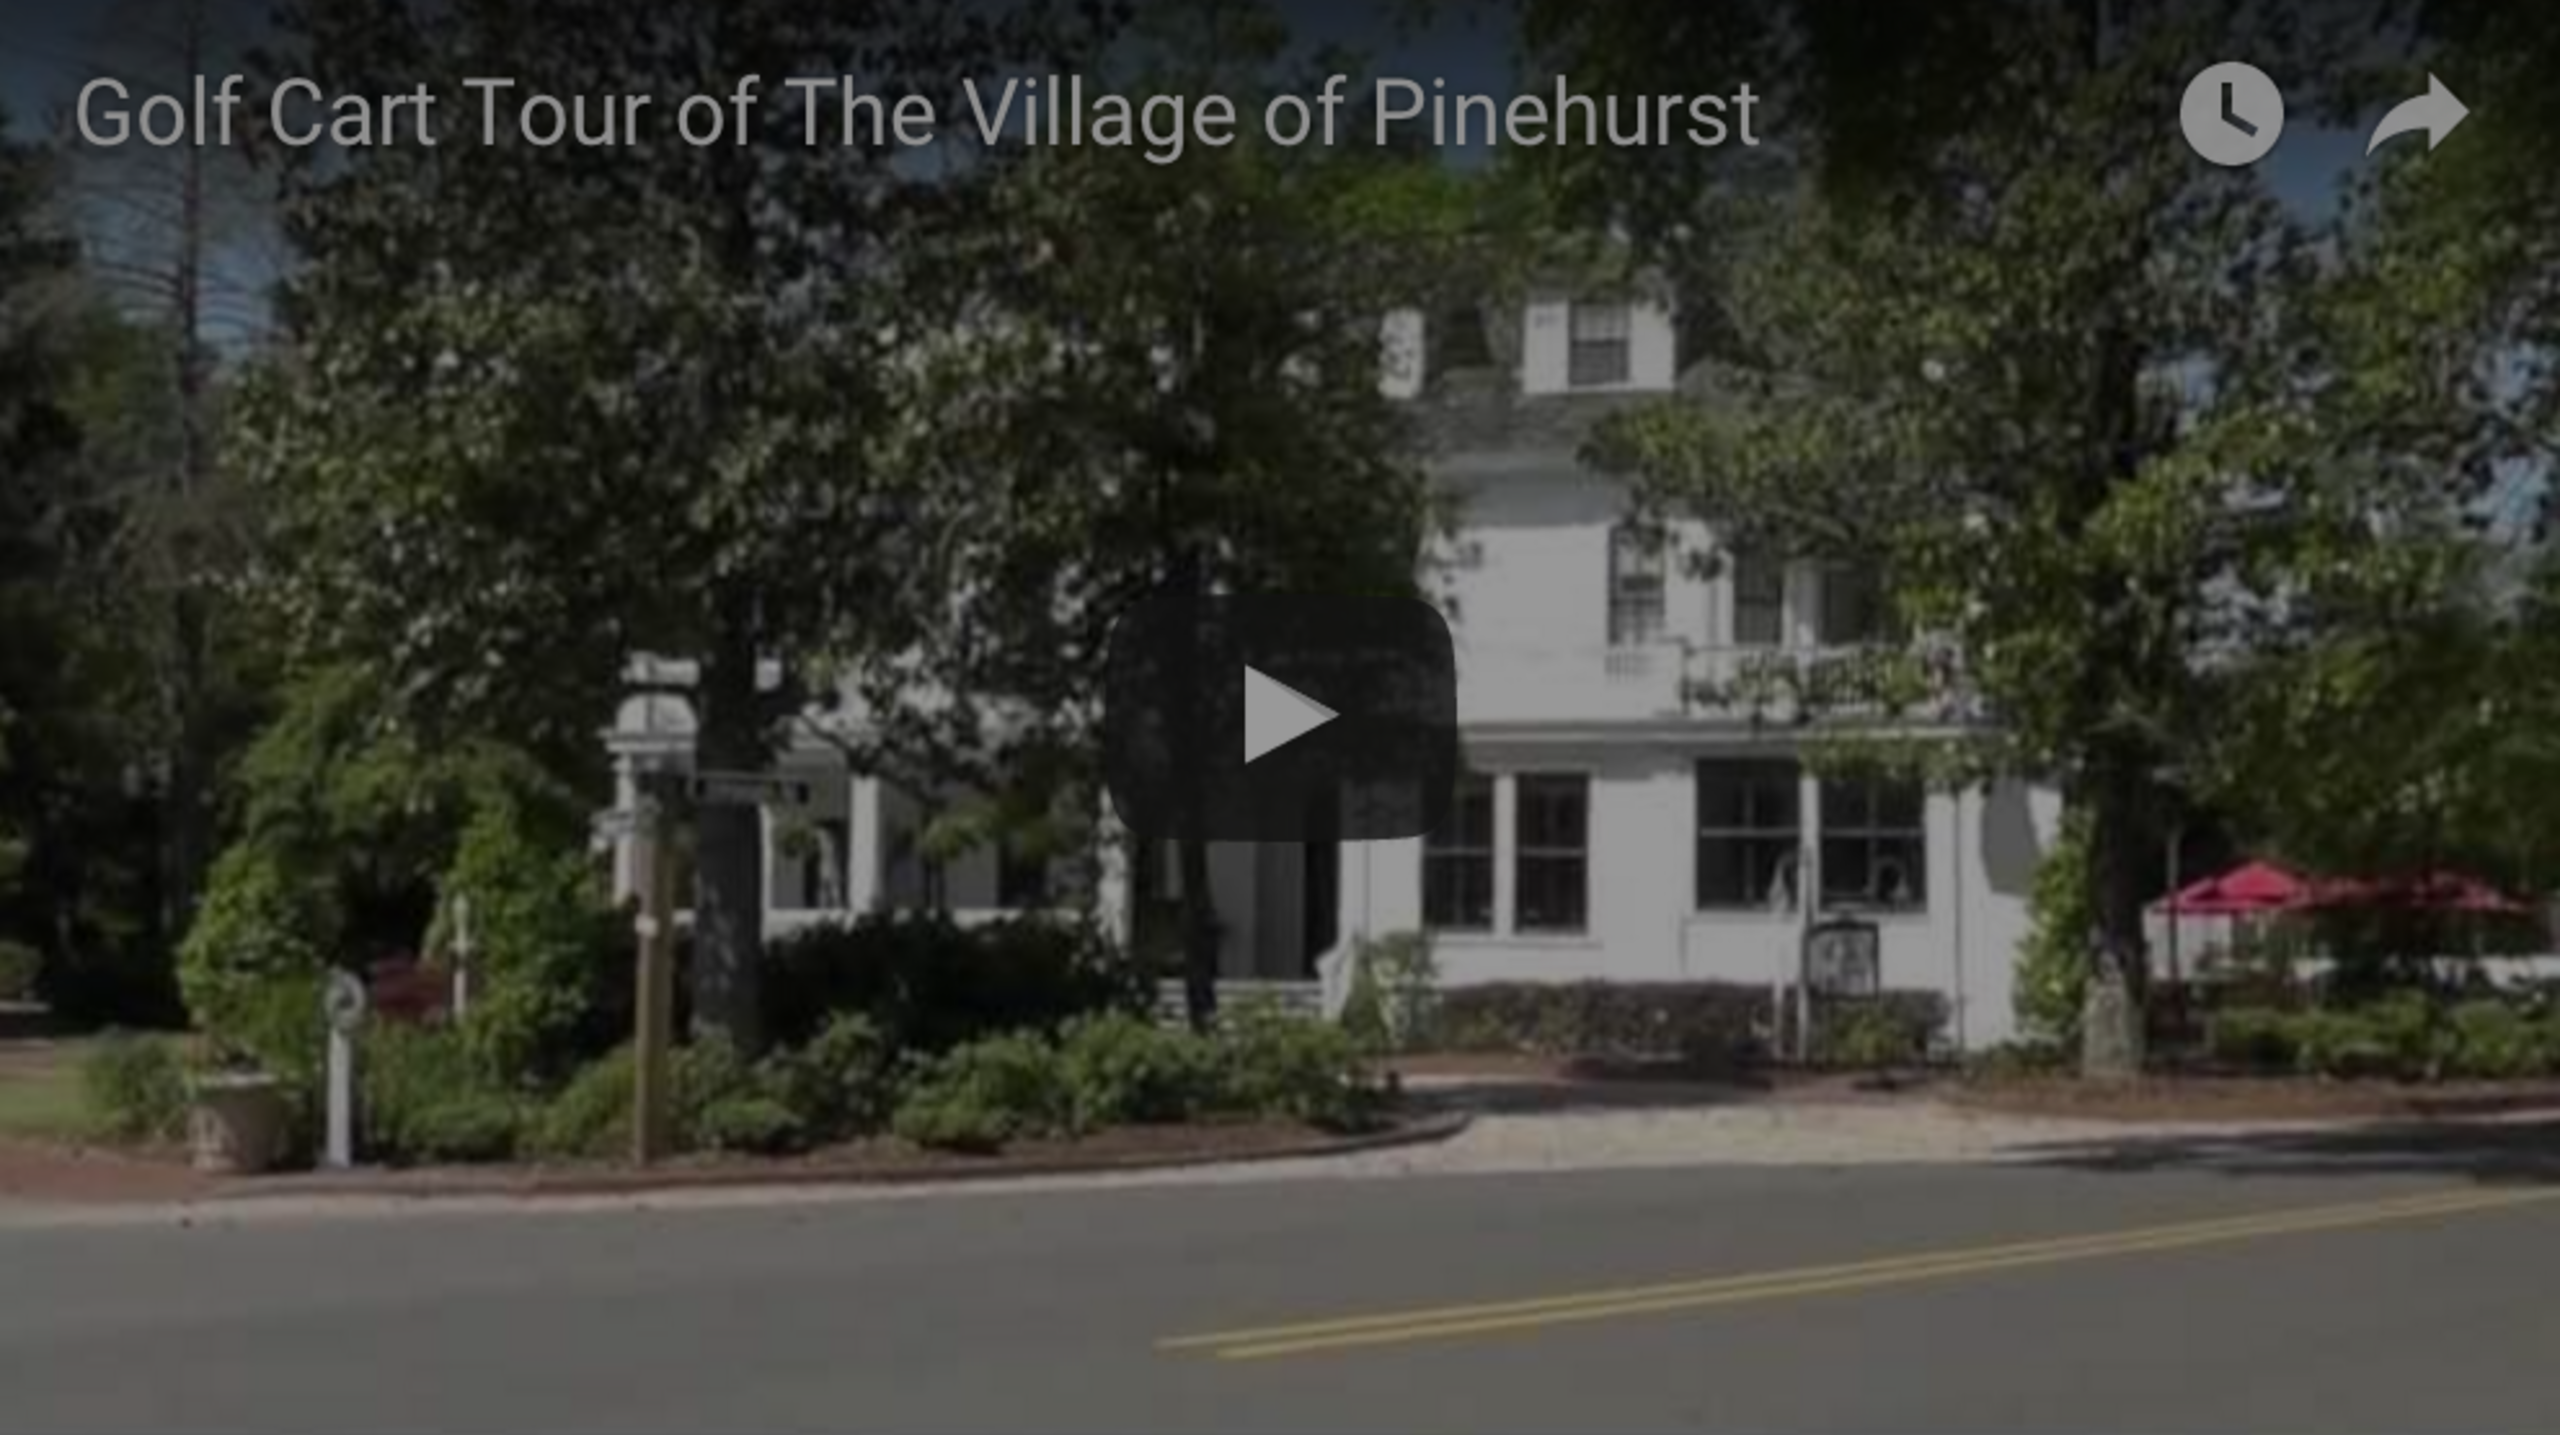 Golf Cart Tour of the Village of Pinehurst 2013